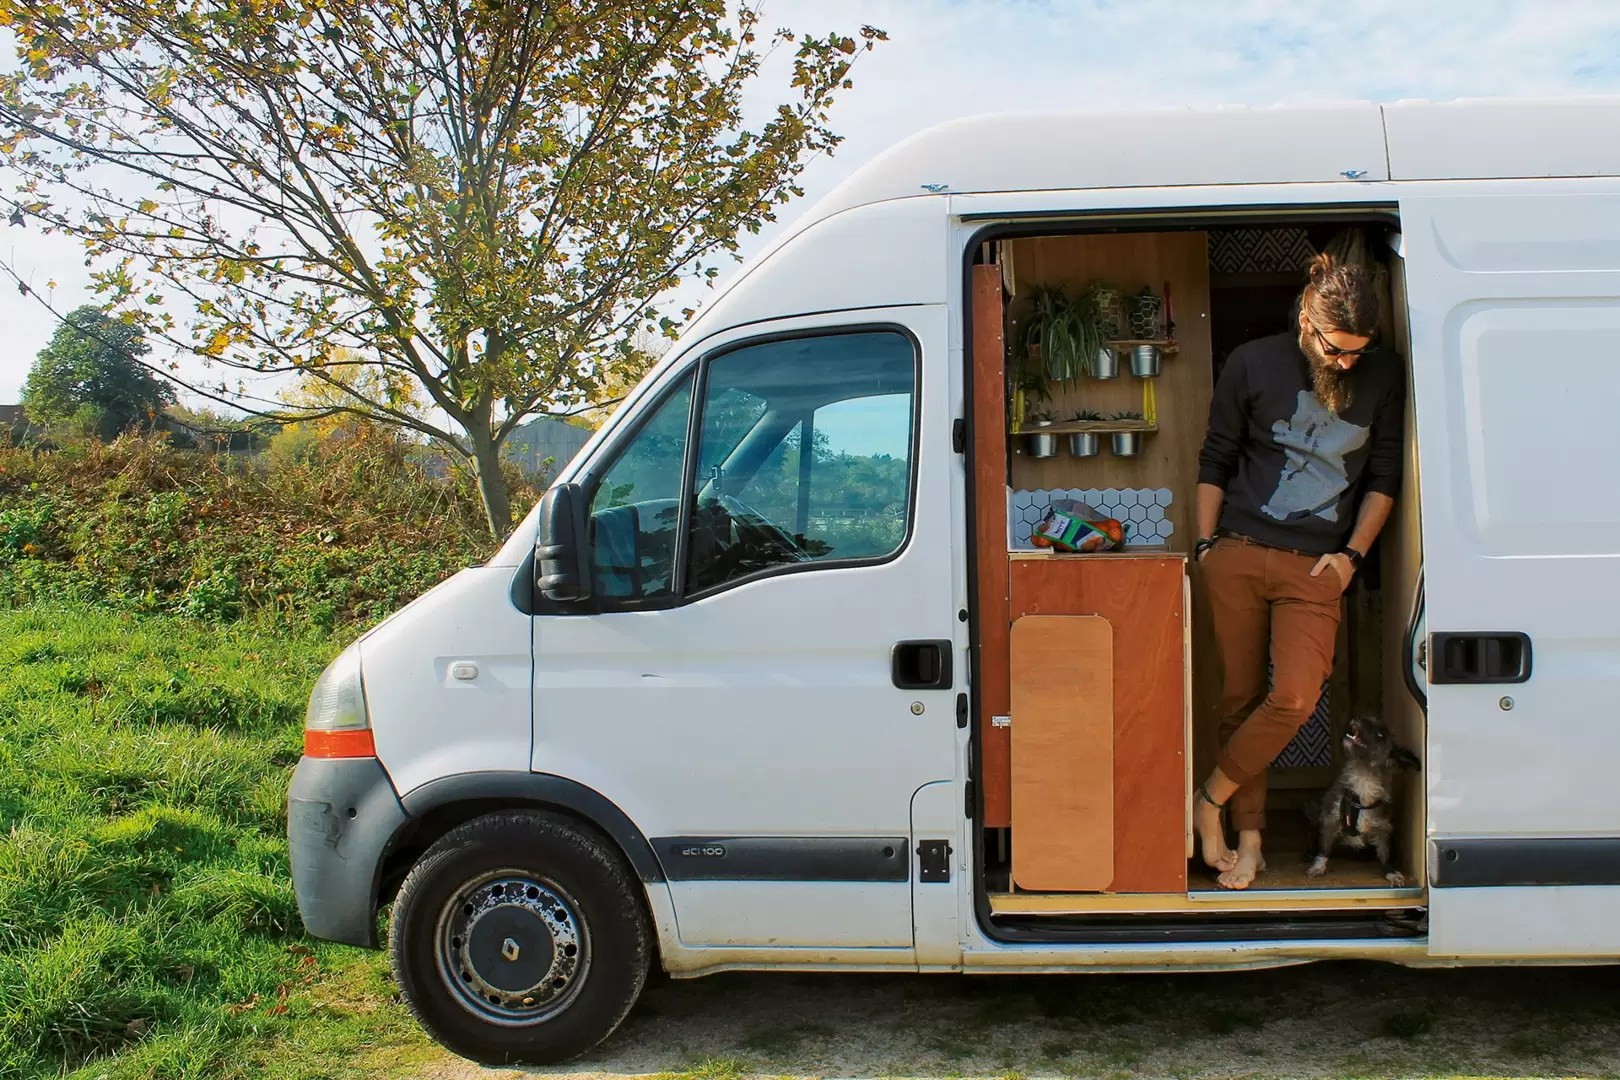 Sofa Van Lifa Living Van Life Ideas Foster Huntington And The Millennial Nomads Living